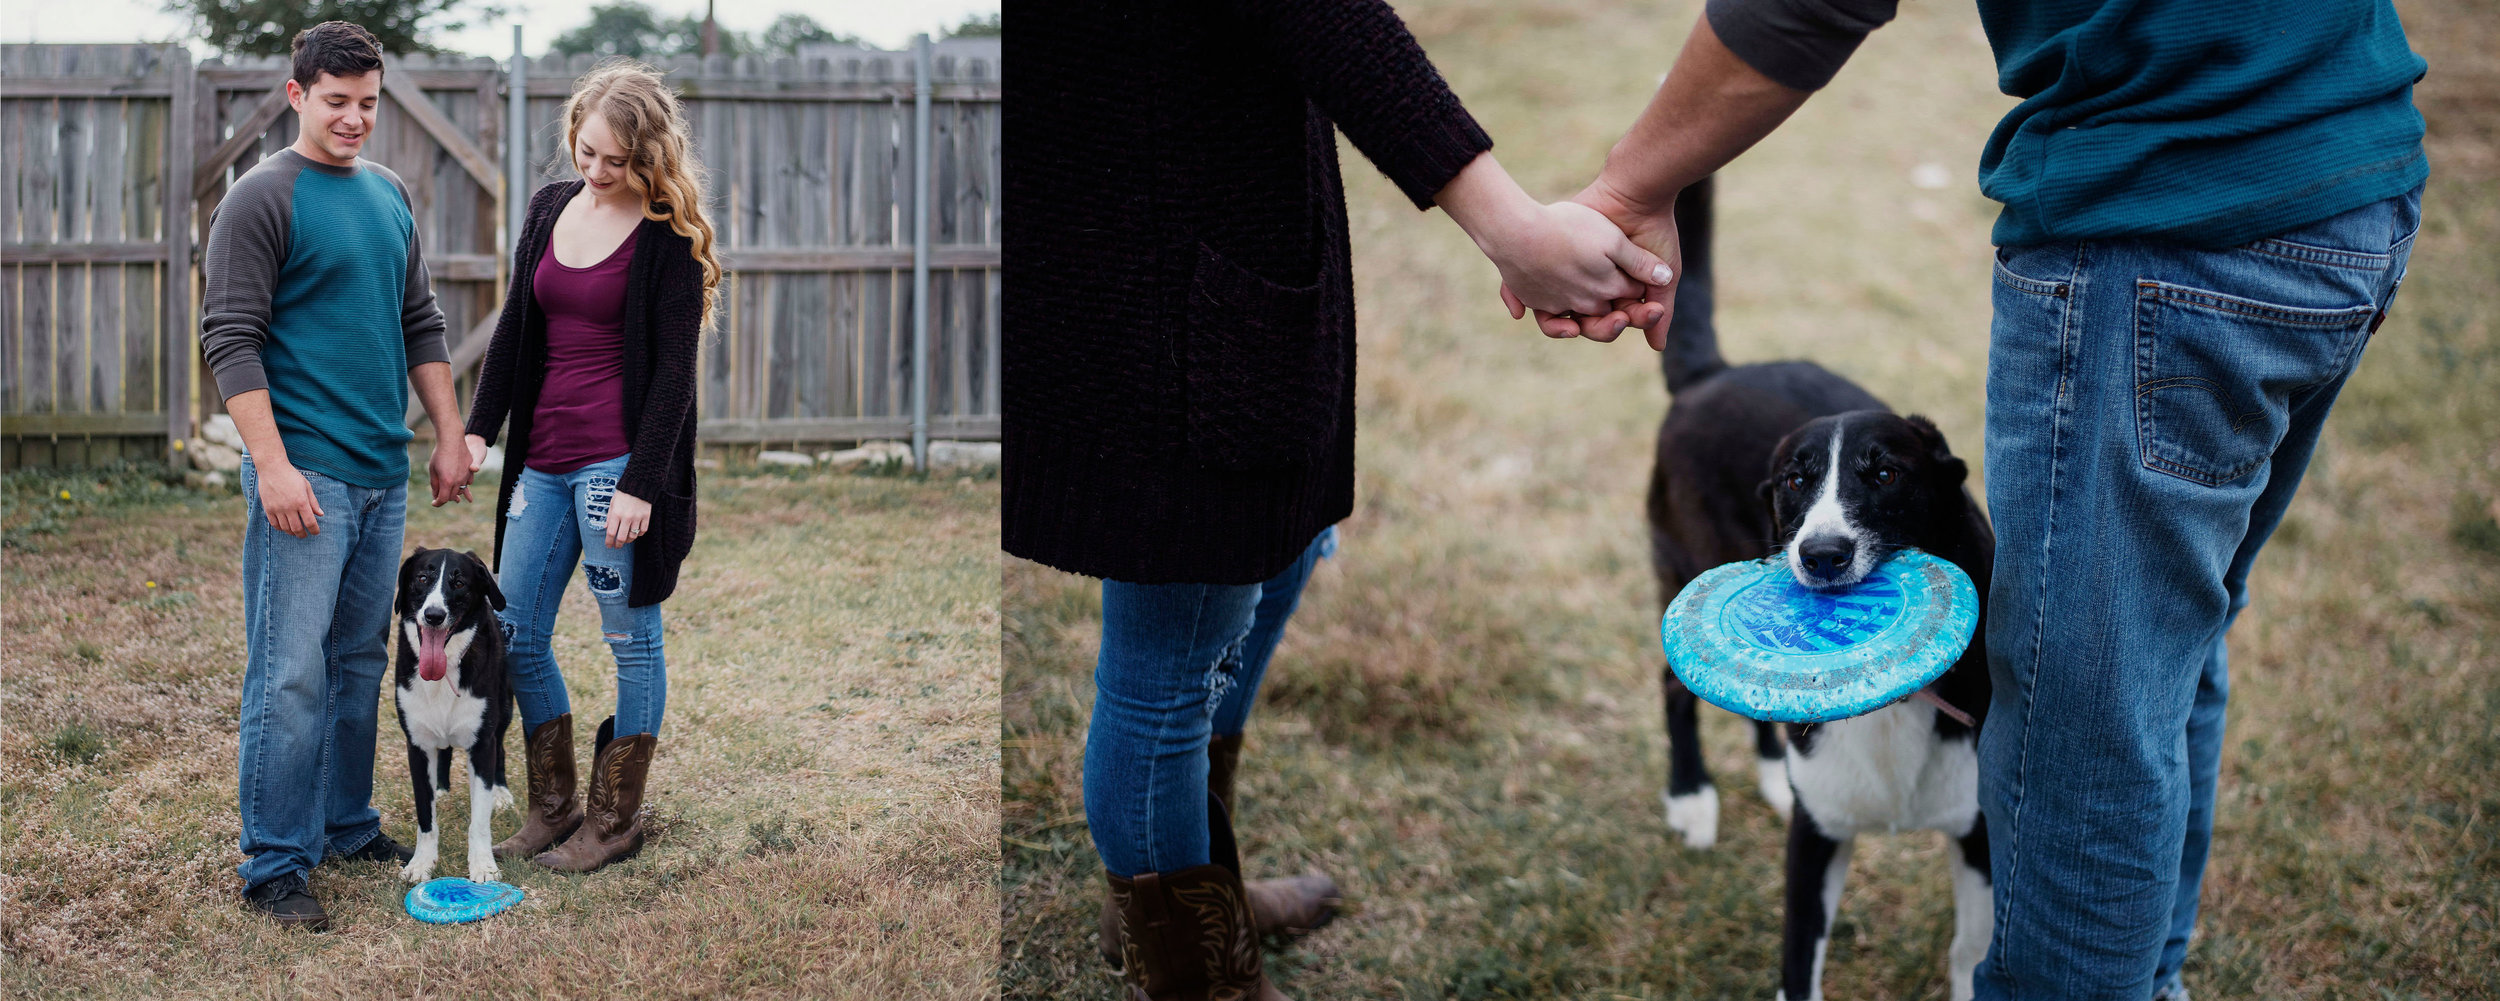 EffJay Photography Lees Summit Family Photographer inhome Lifestyle Session with dogs011.jpg